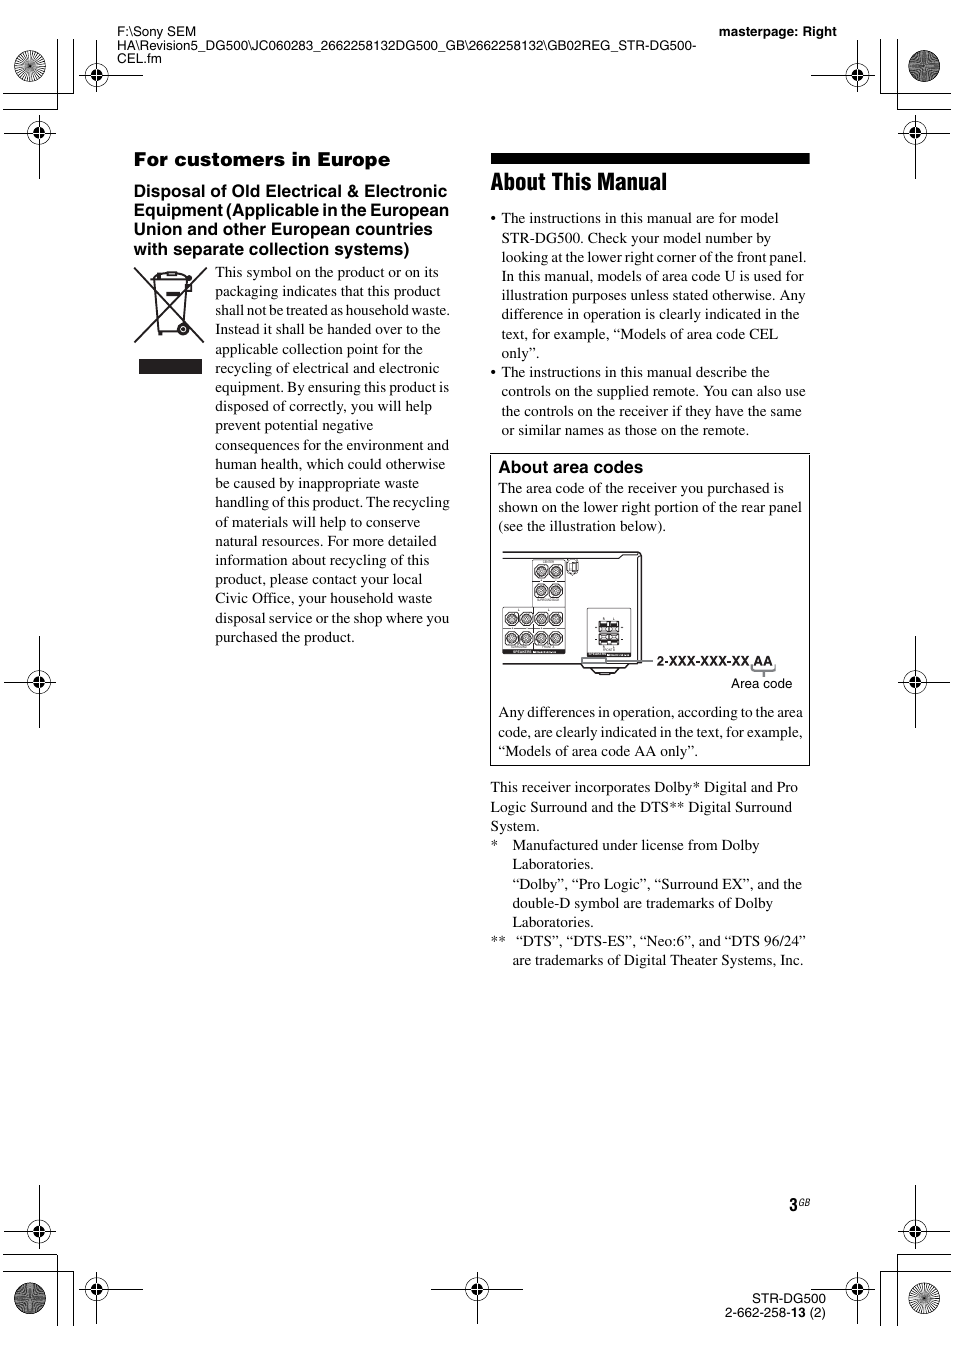 about this manual for customers in europe about area codes sony rh manualsdir com Sony STR-DG500 DVD Sony STR-DG500 DVD